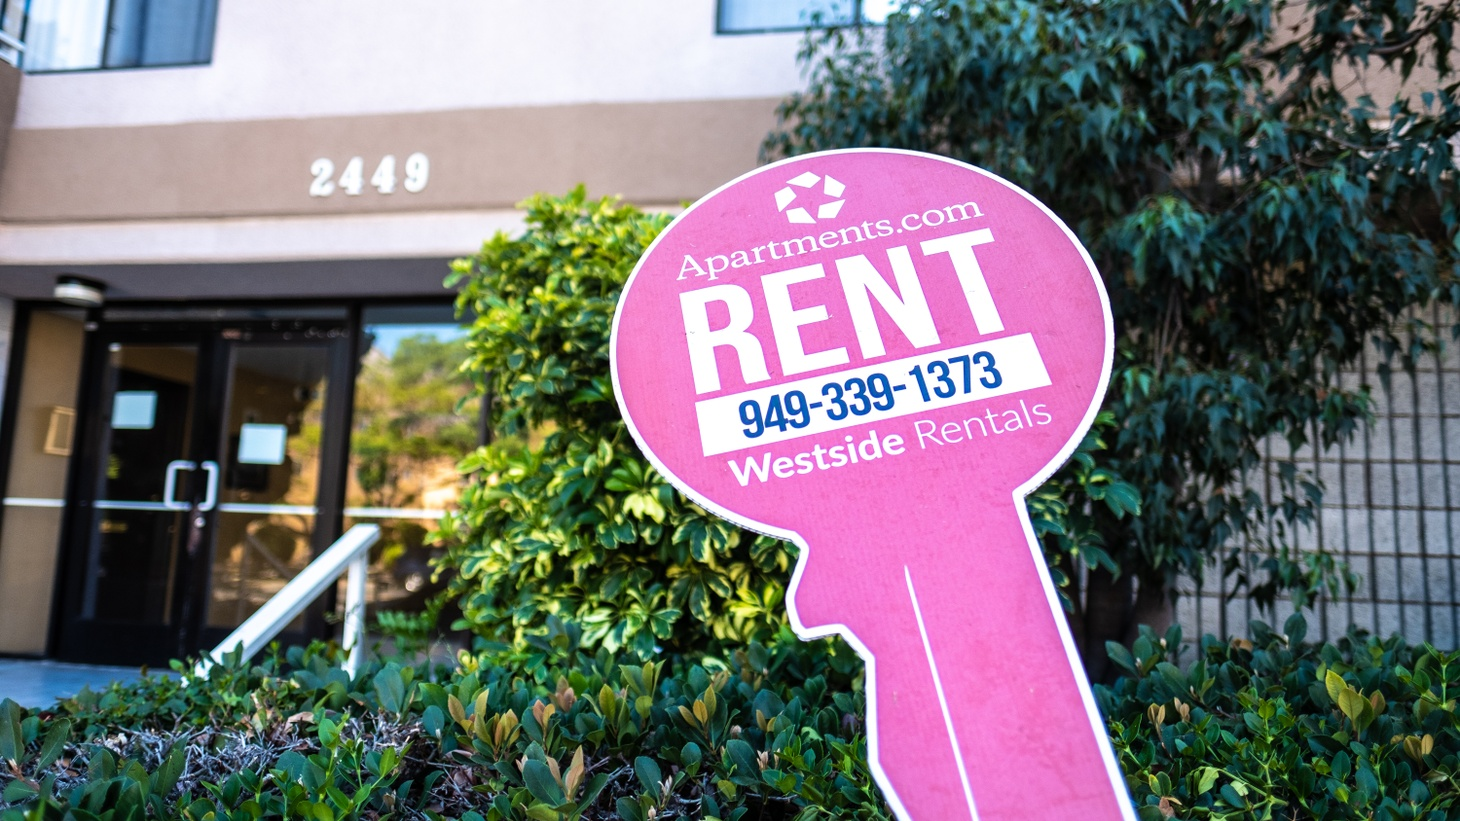 The LA City Council recently approved a relief fund for renters in LA